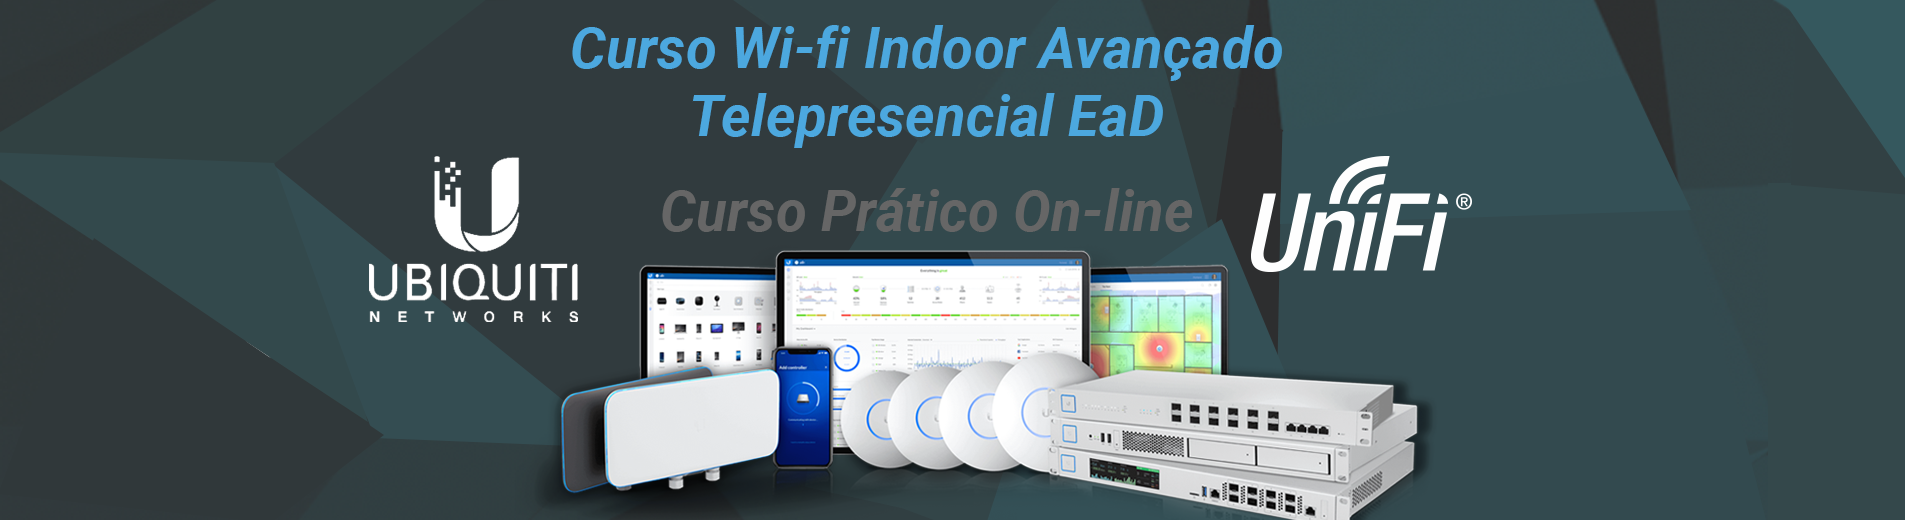 Ubiquiti_indoor_avancado